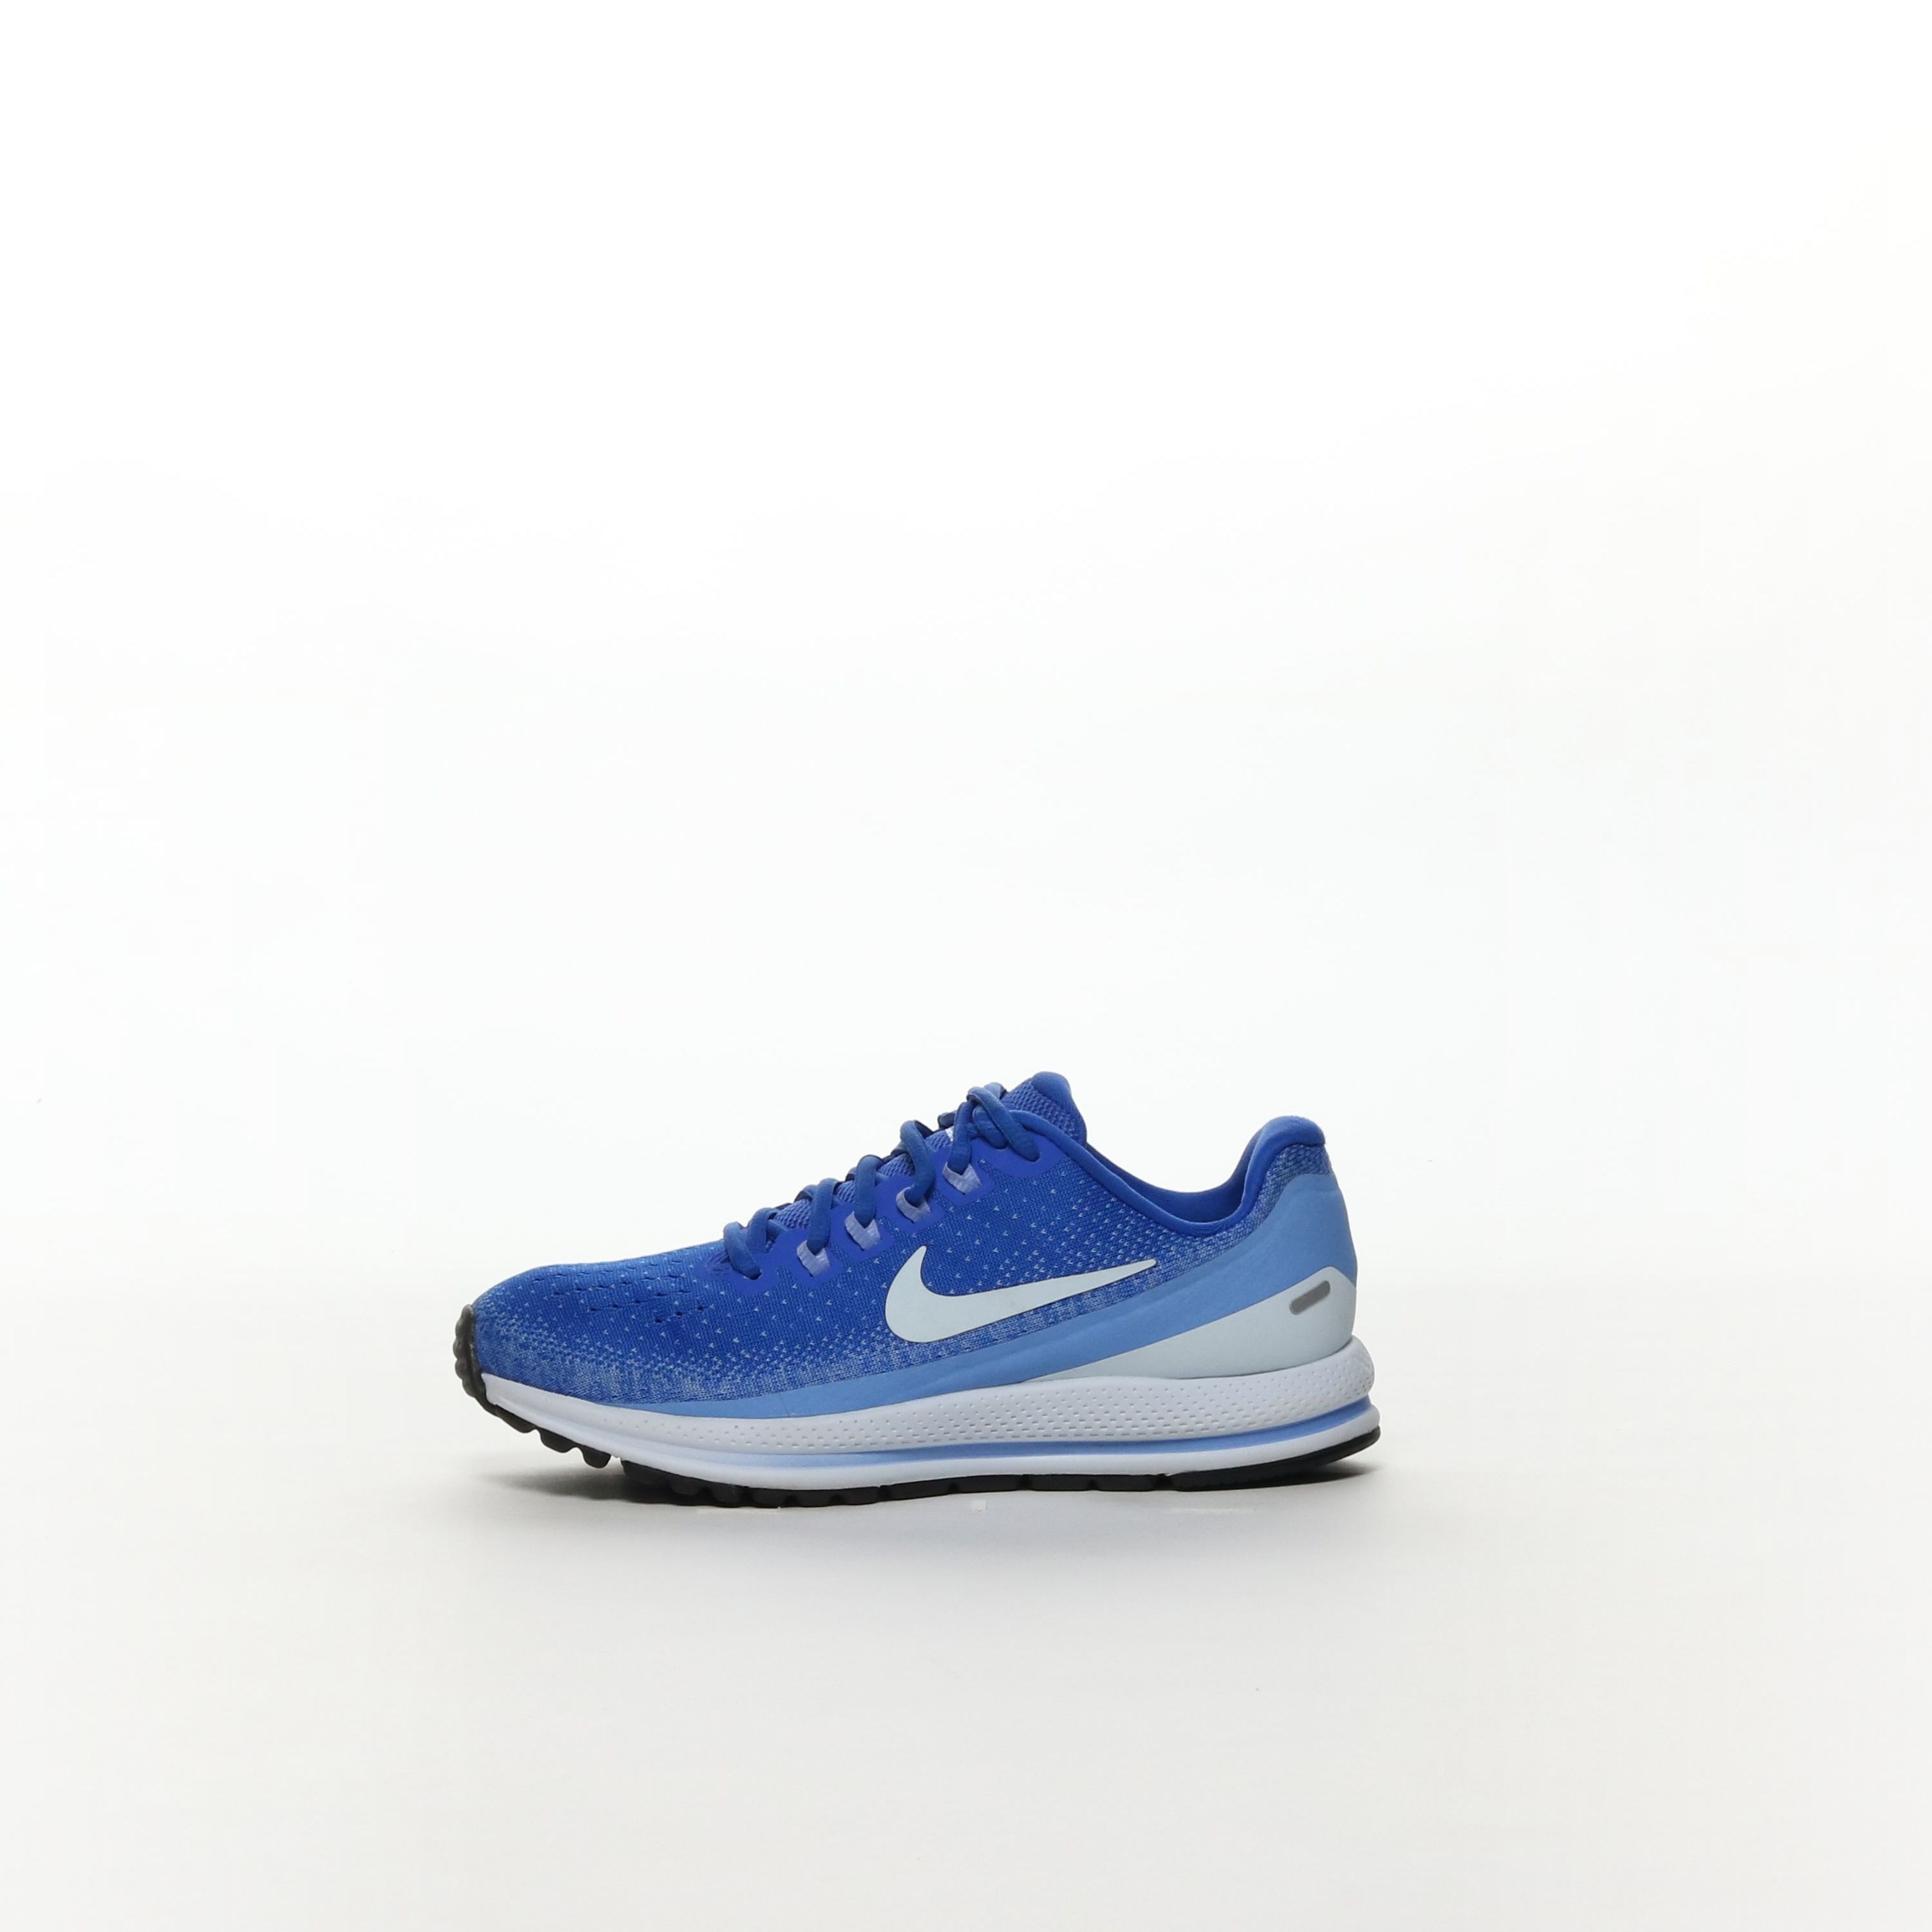 Nike Air Zoom Vomero 13 Blue Running Shoes 922909 400